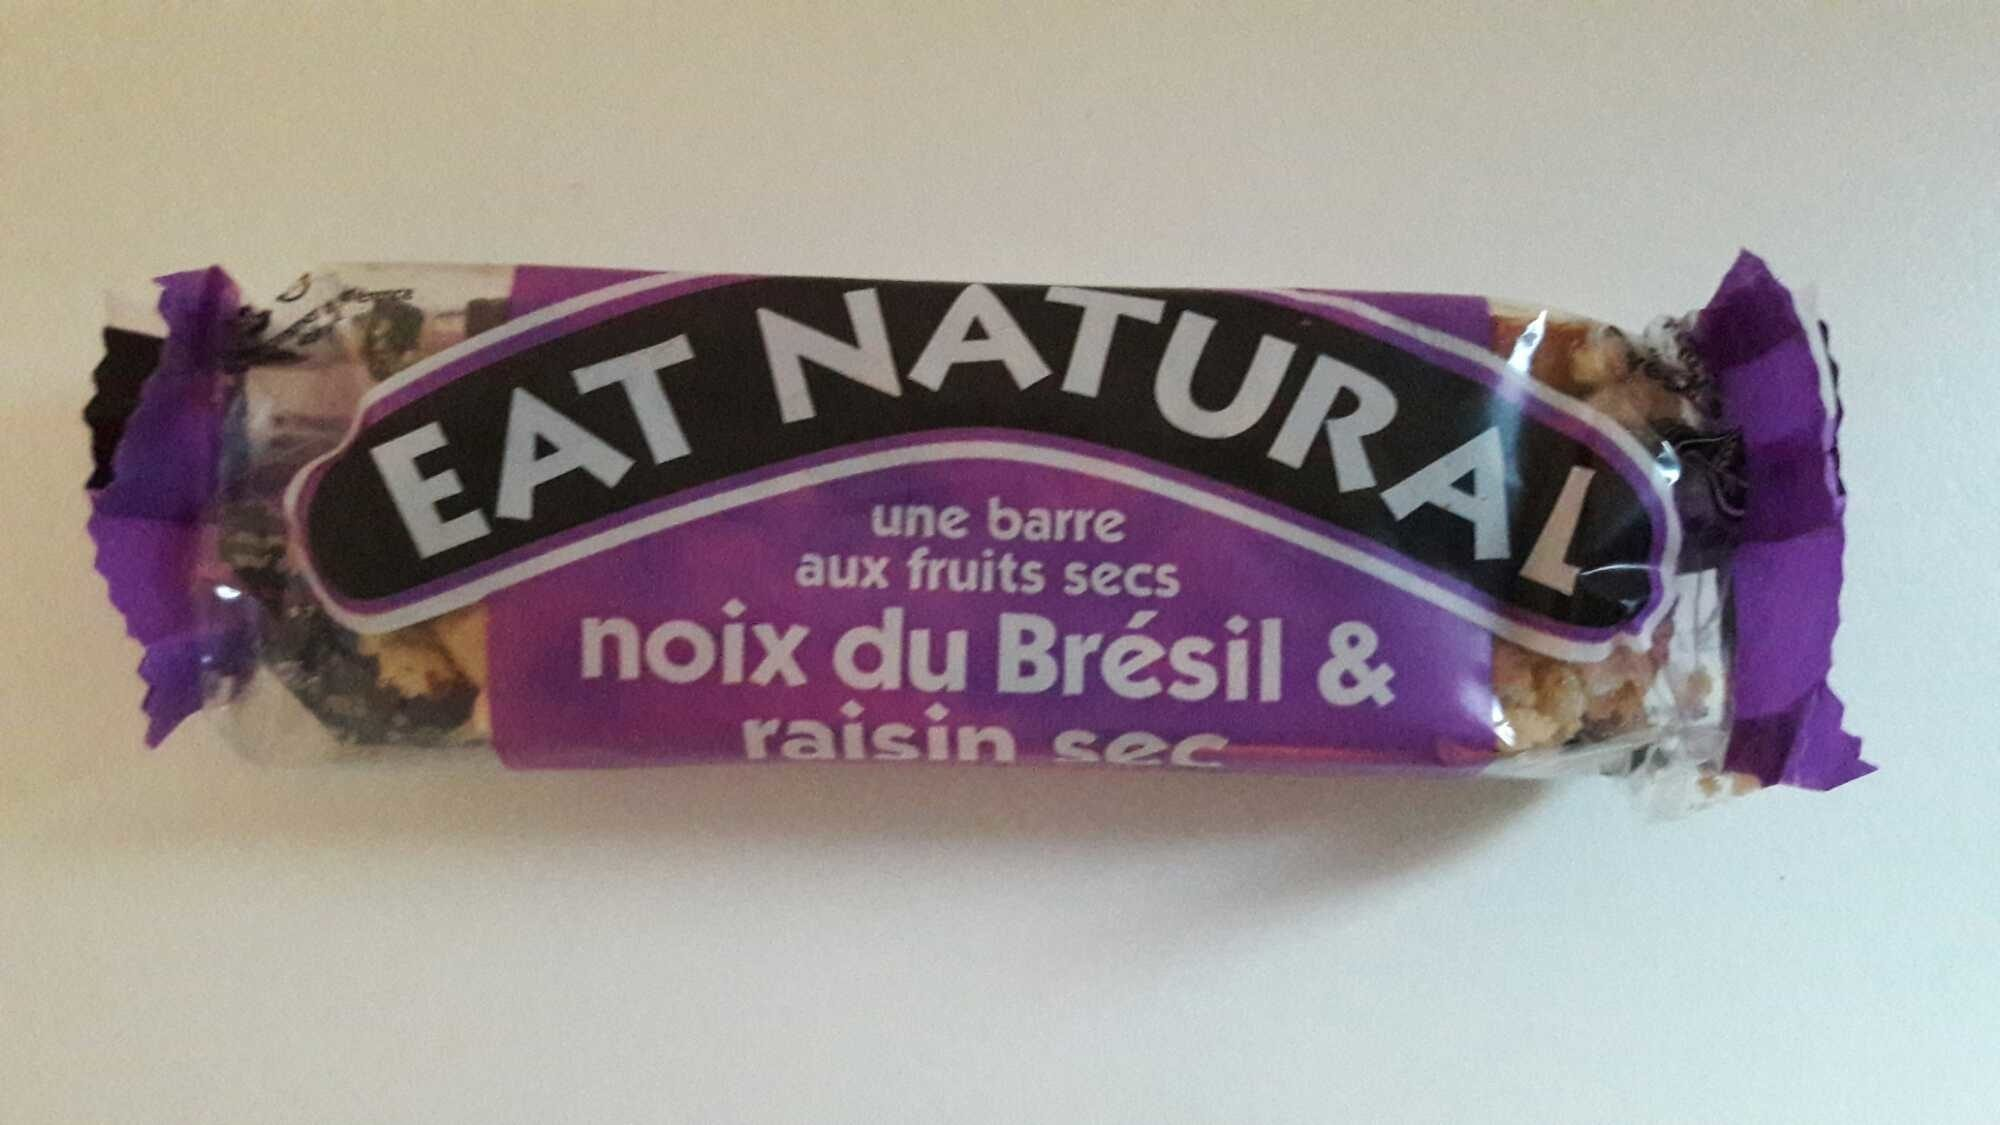 Fruit & Nut Bar Almond & Sultana - Product - fr